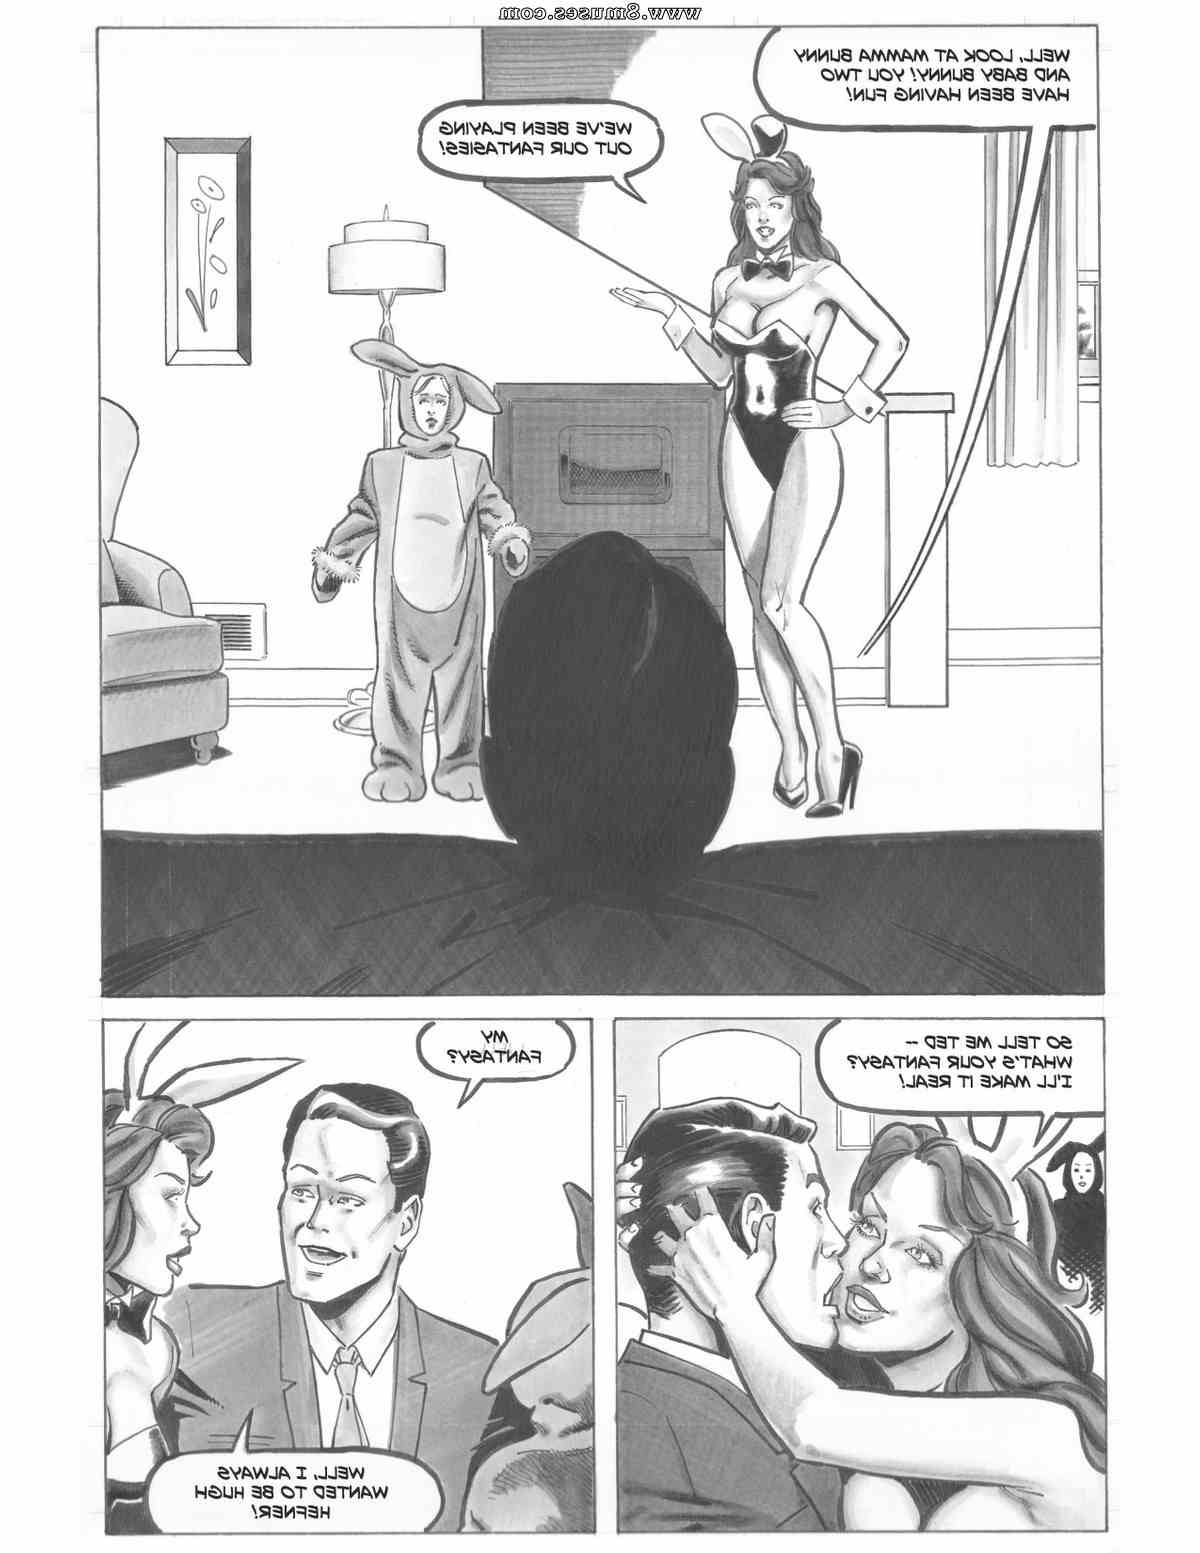 DreamTales-Comics/Teen-Age-Homebreaker Teen-Age_Homebreaker__8muses_-_Sex_and_Porn_Comics_20.jpg